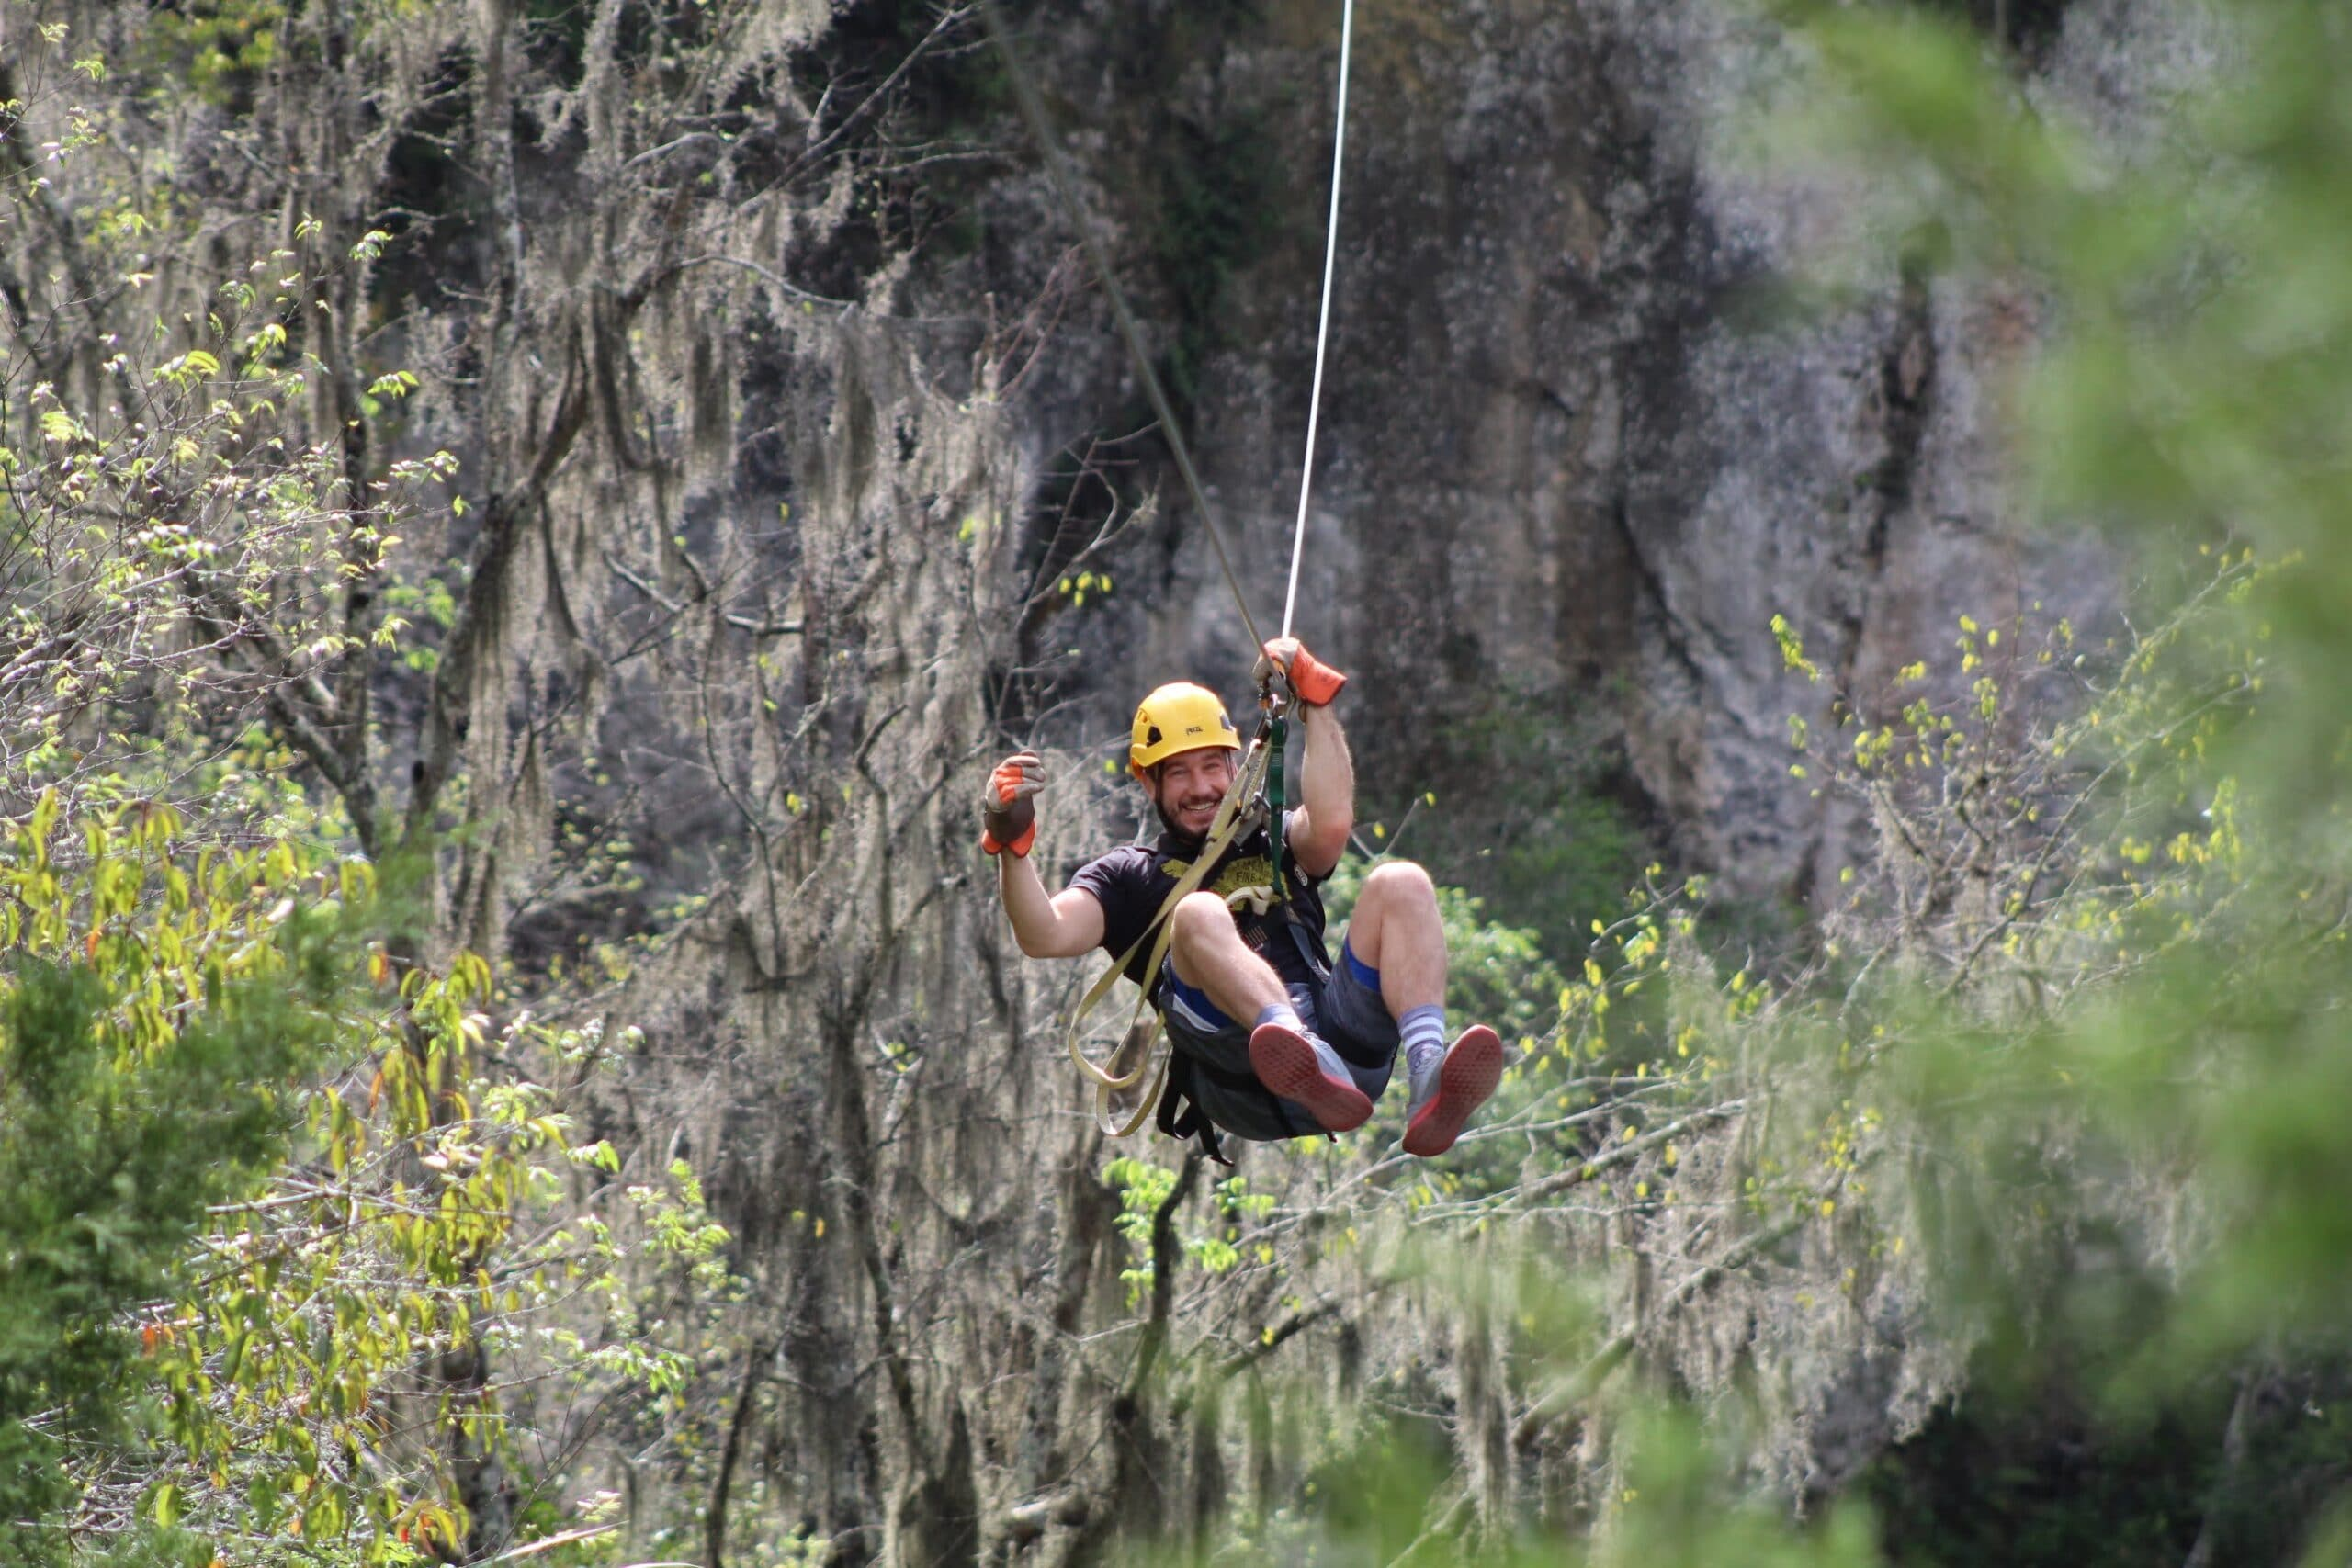 Our guide zip-lining over the canyon_courtesy of The Canyons Zip Line and Adventure Park, one of the cool things to do in Florida